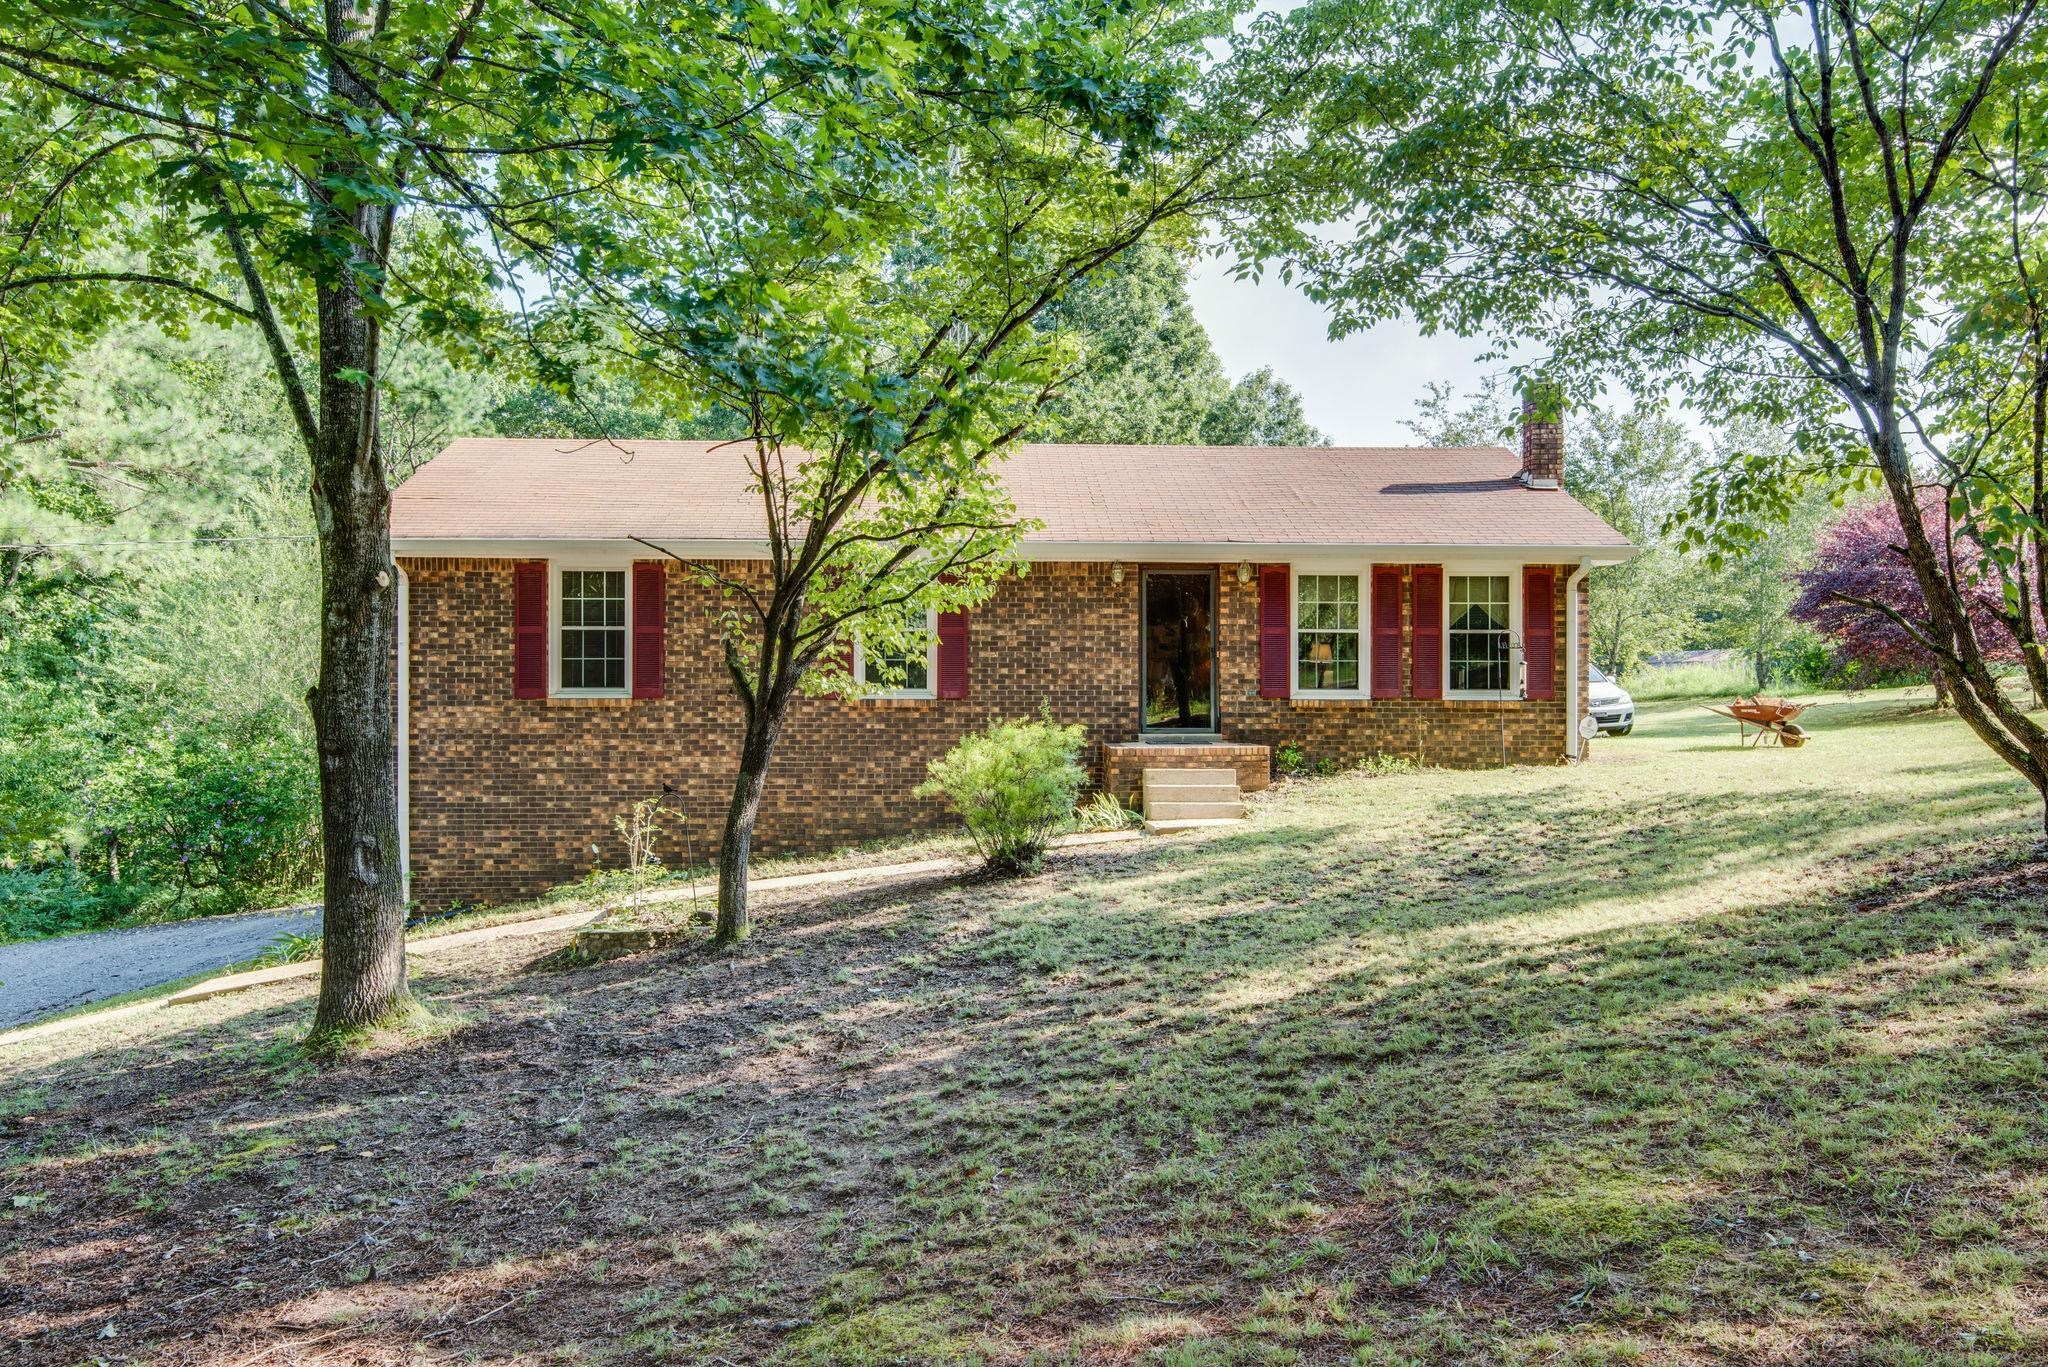 216 Fantasy Dr, Lyles, TN 37098 - Lyles, TN real estate listing